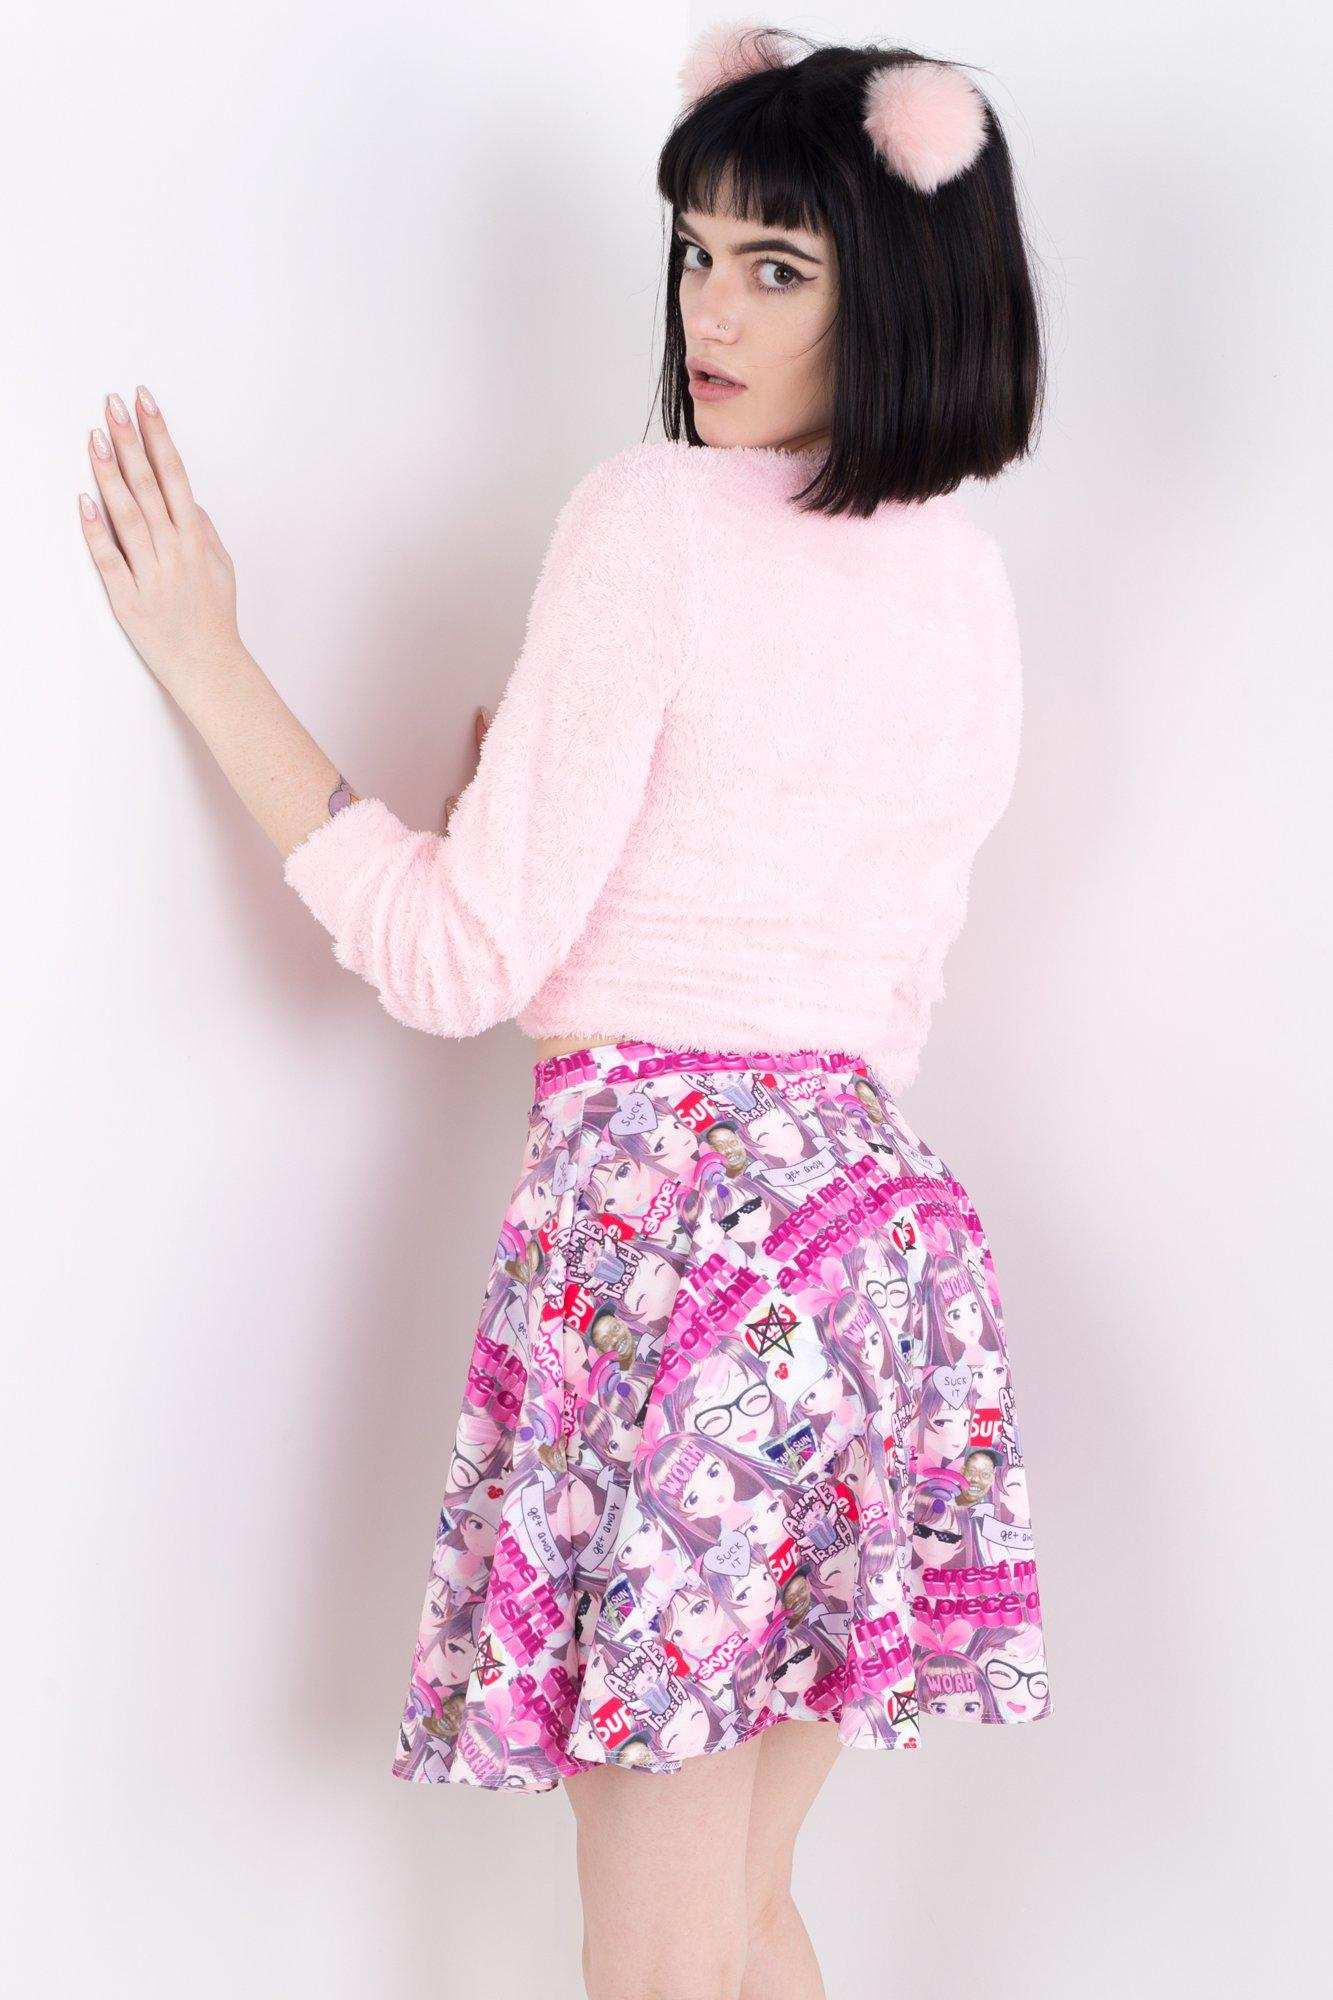 Anime Trash Skater Skirt